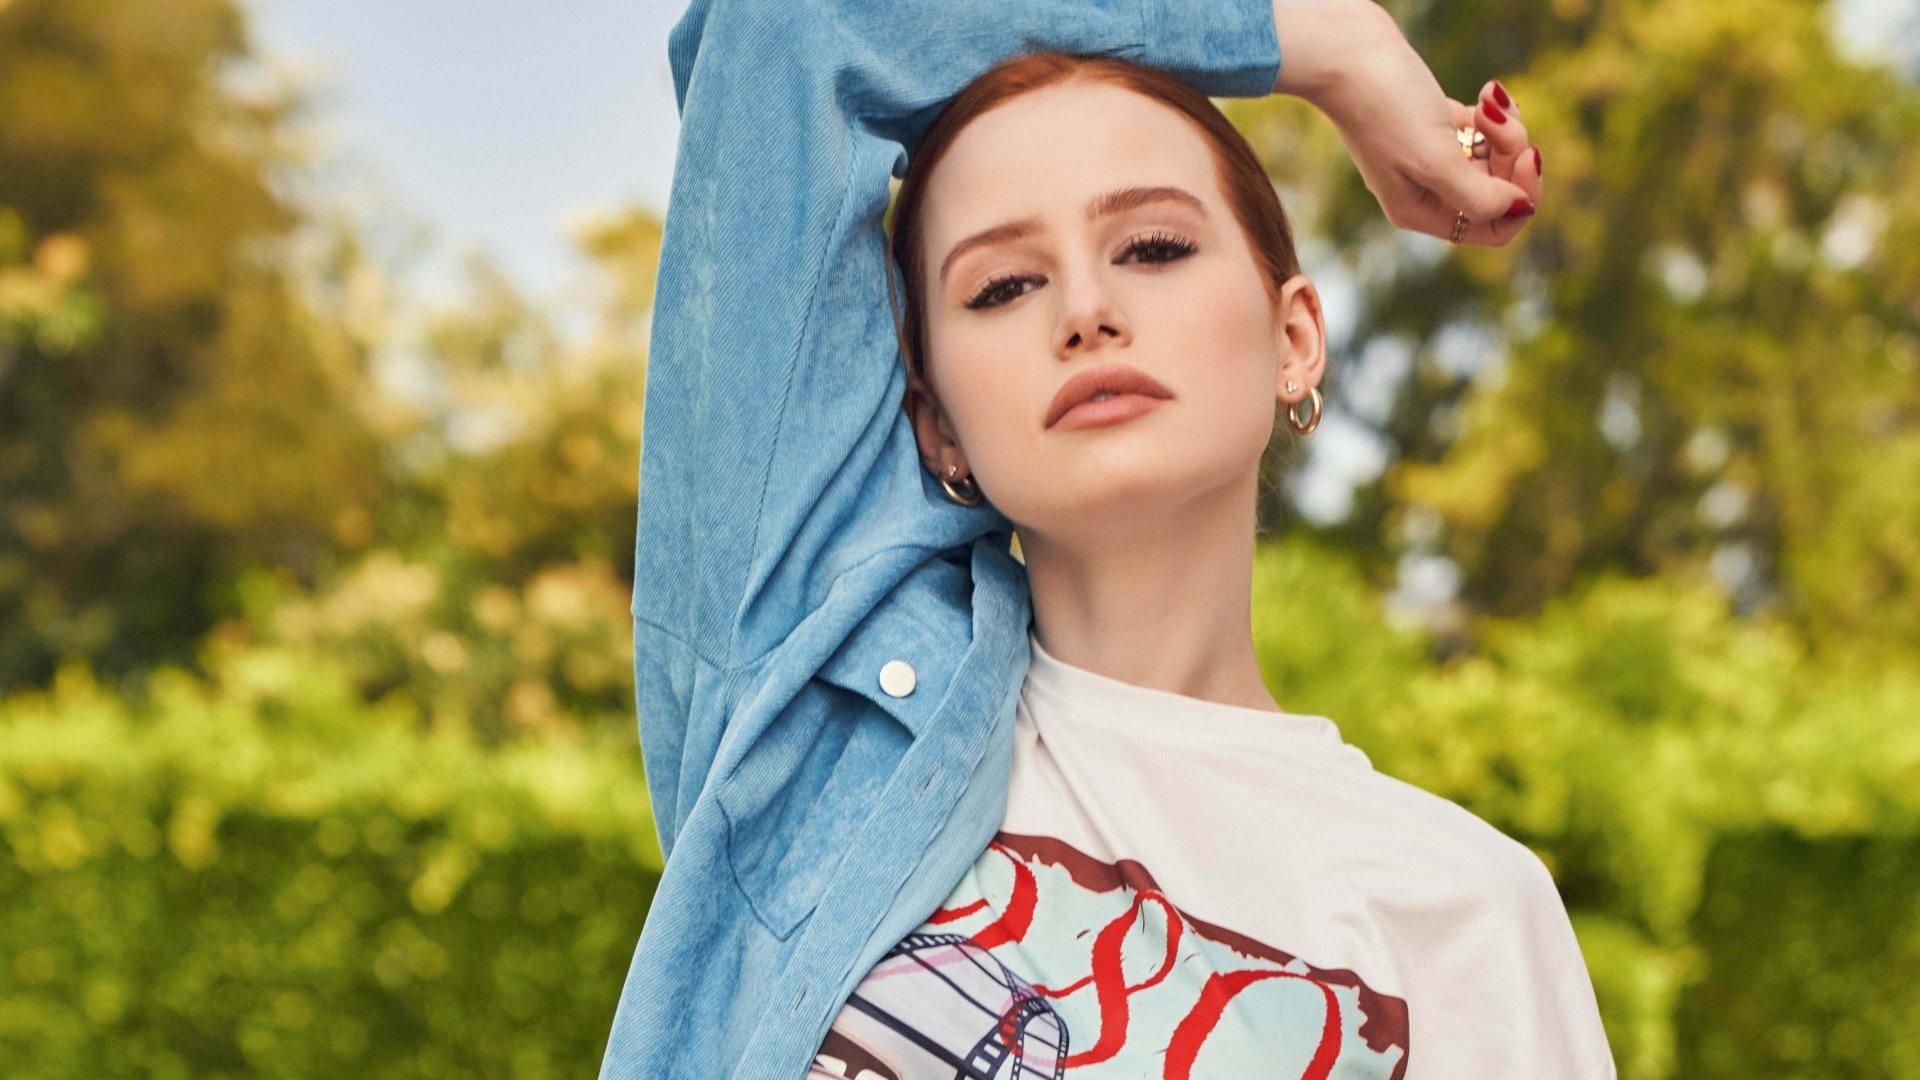 Madelaine Petsch for SHEIN Fall Collection, 2019 4k Ultra HD